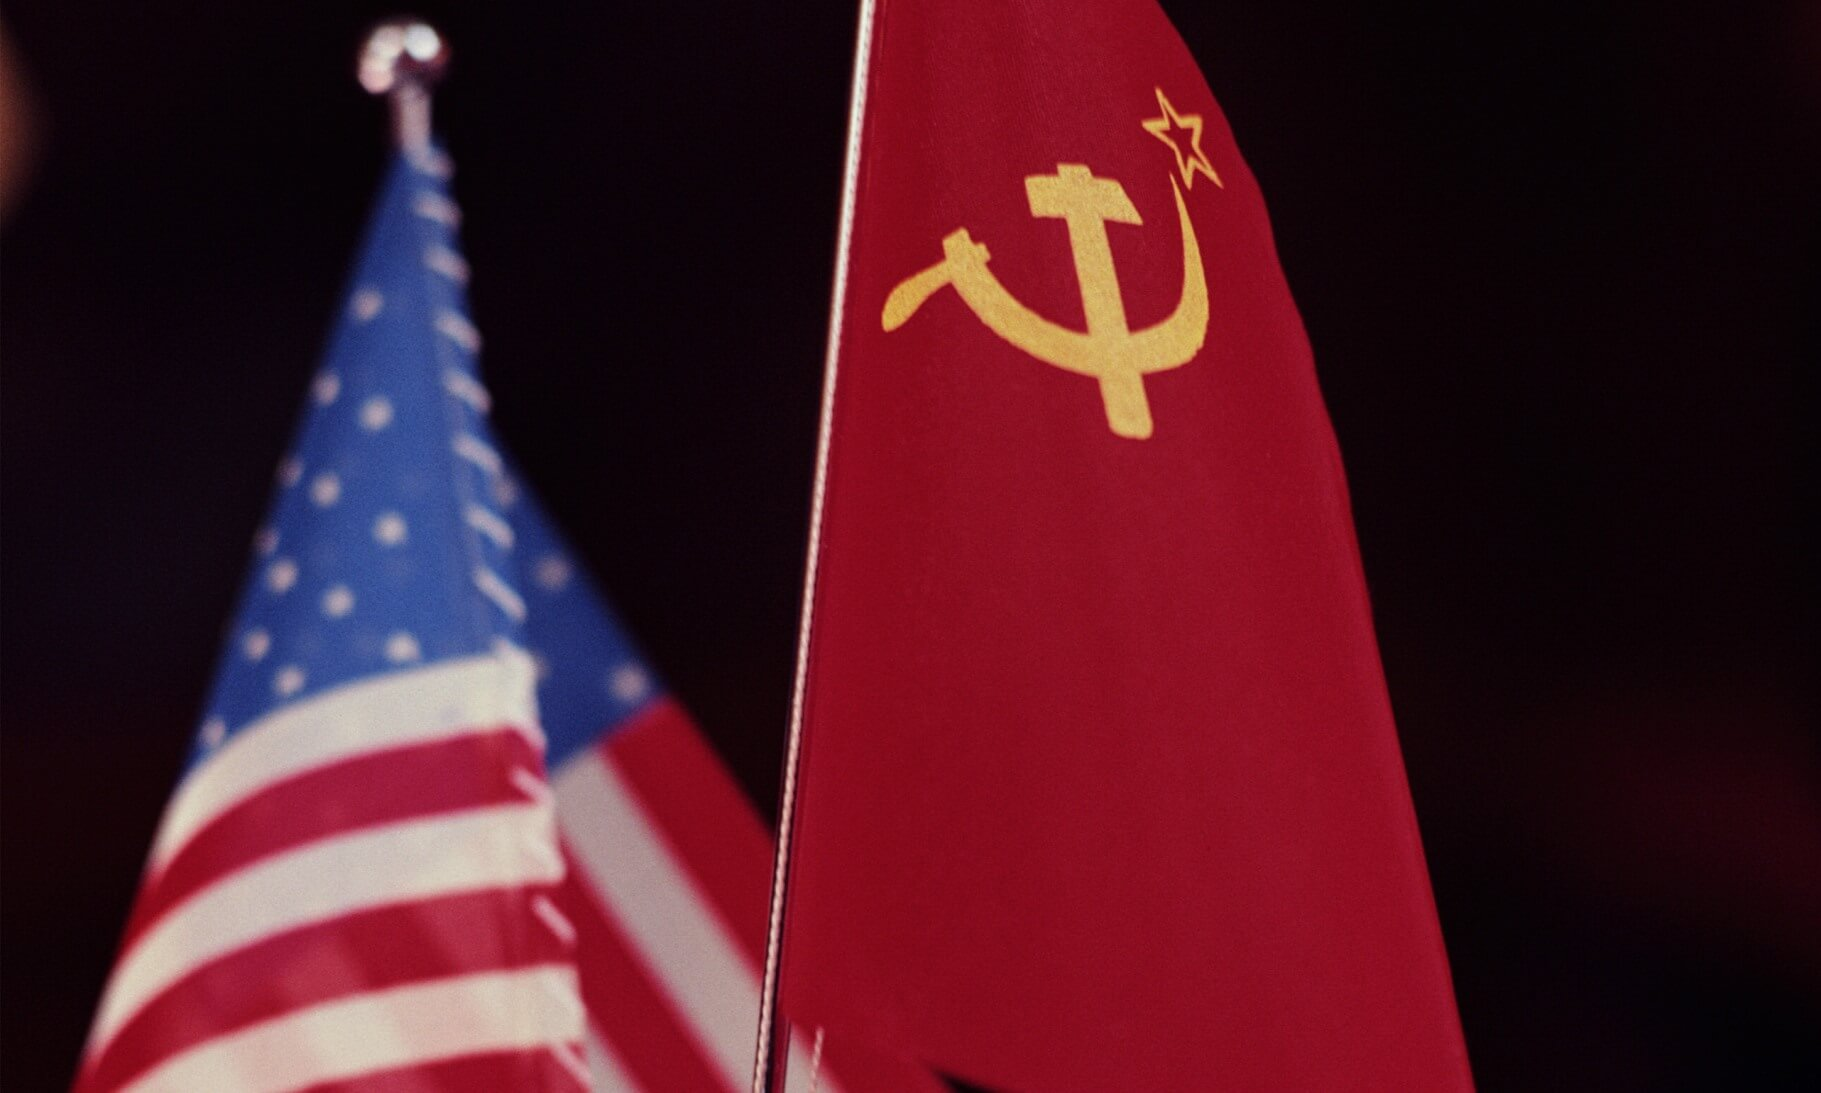 Soviet Union and United States flags